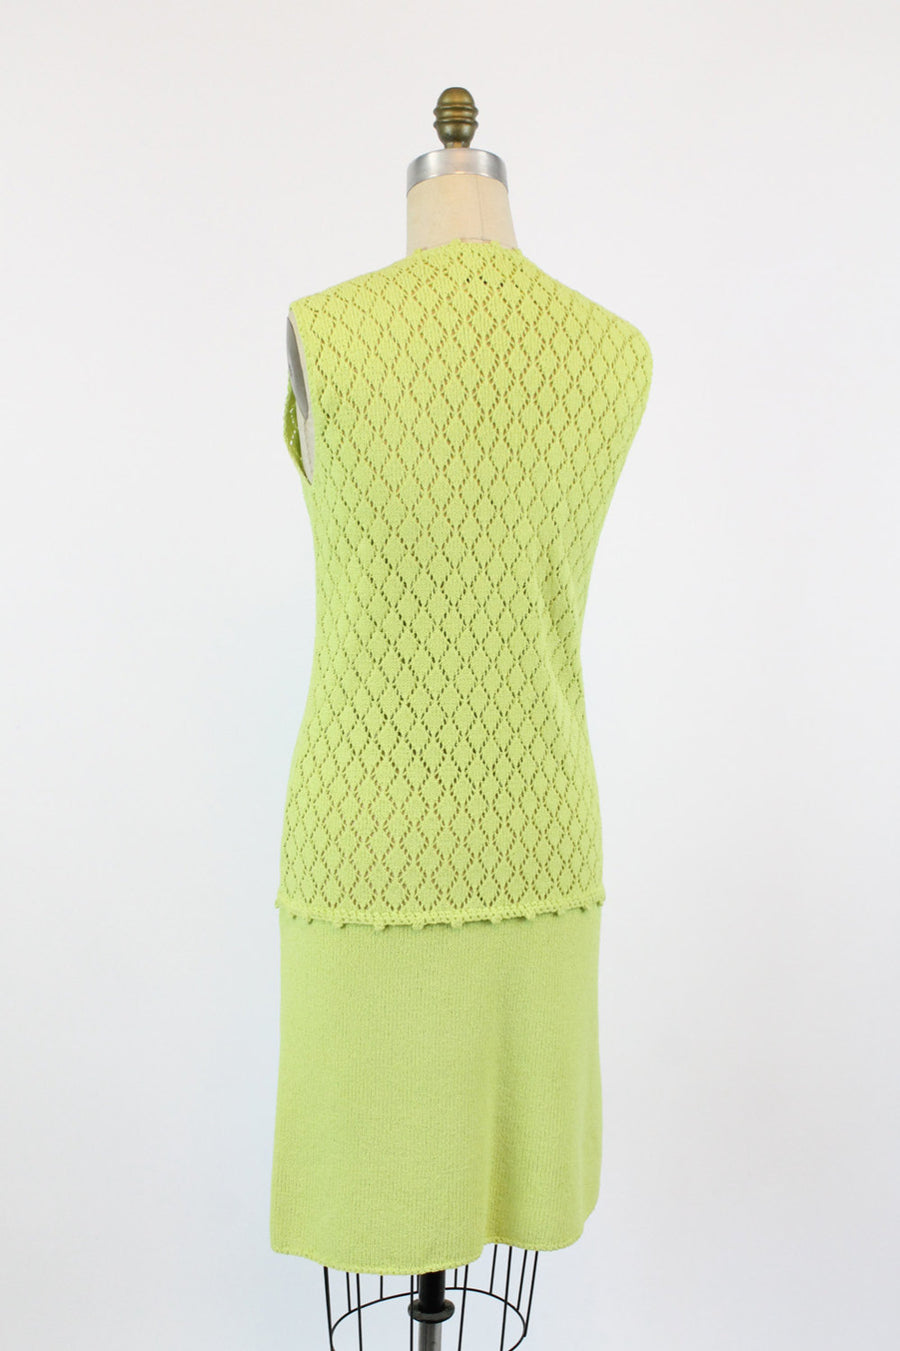 1970s St John Knits chartruese dress | vintage crochet knit sweater dress | small